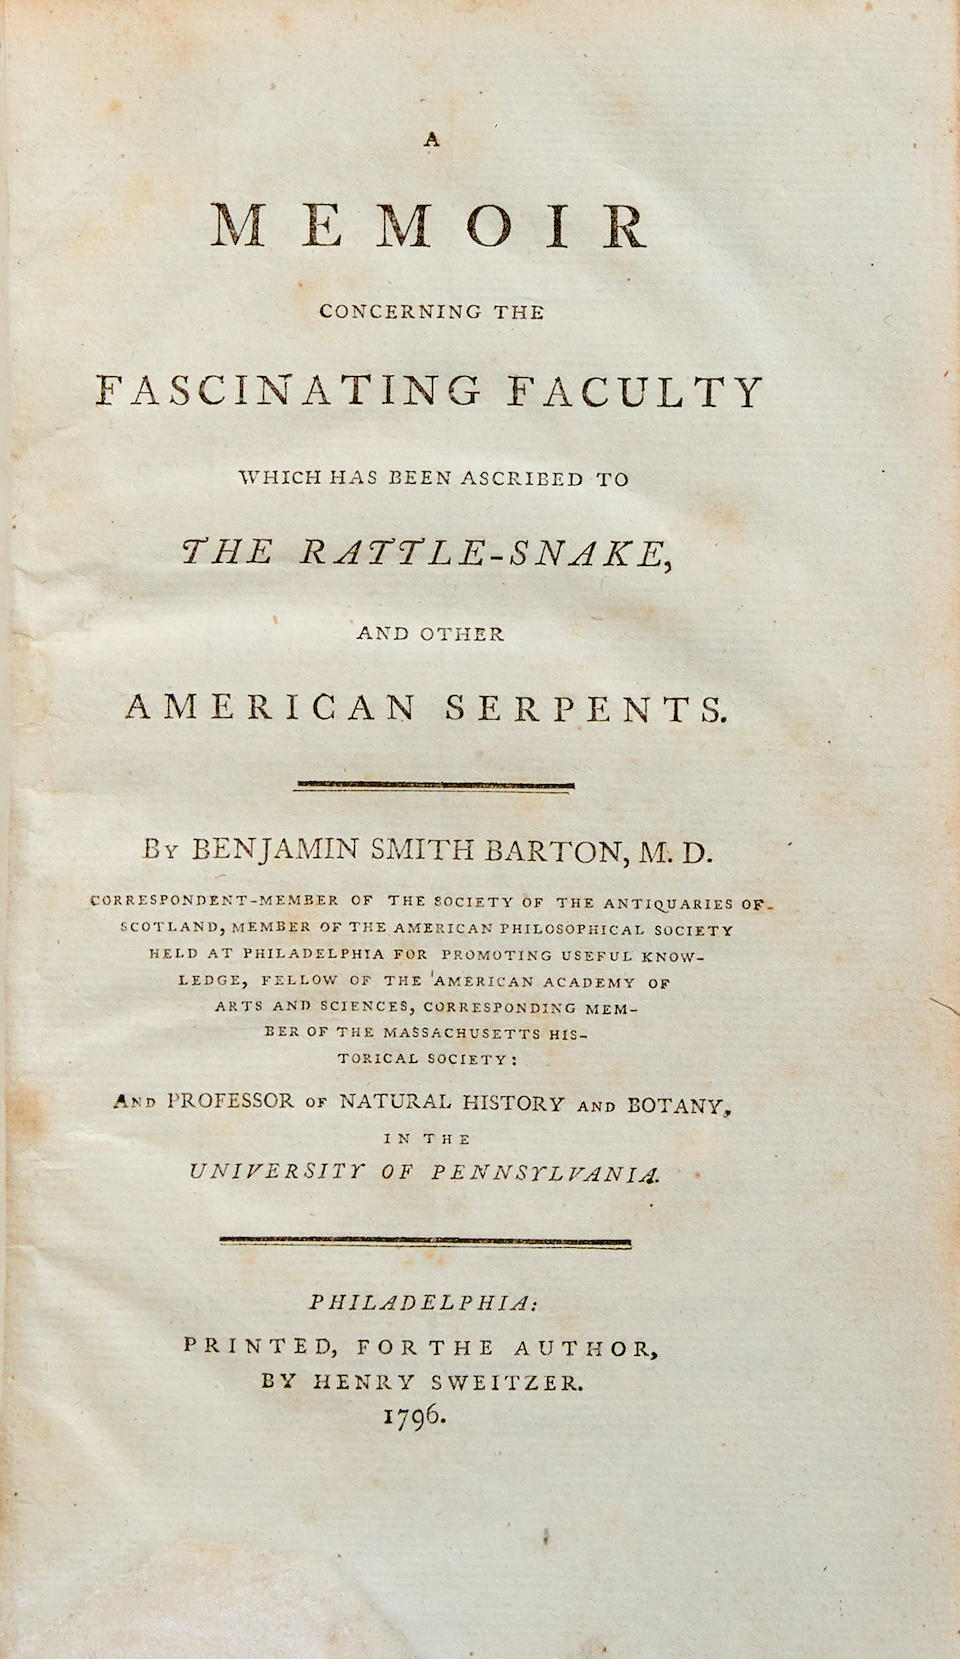 BARTON, BENJAMIN SMITH. 1766-1815. A Memoir concerning the Fascinating Faculty which has been ascribed to the Rattle-Snake, and other American Serpents. Philadelphia: Henry Sweitzer for the author, 1796.